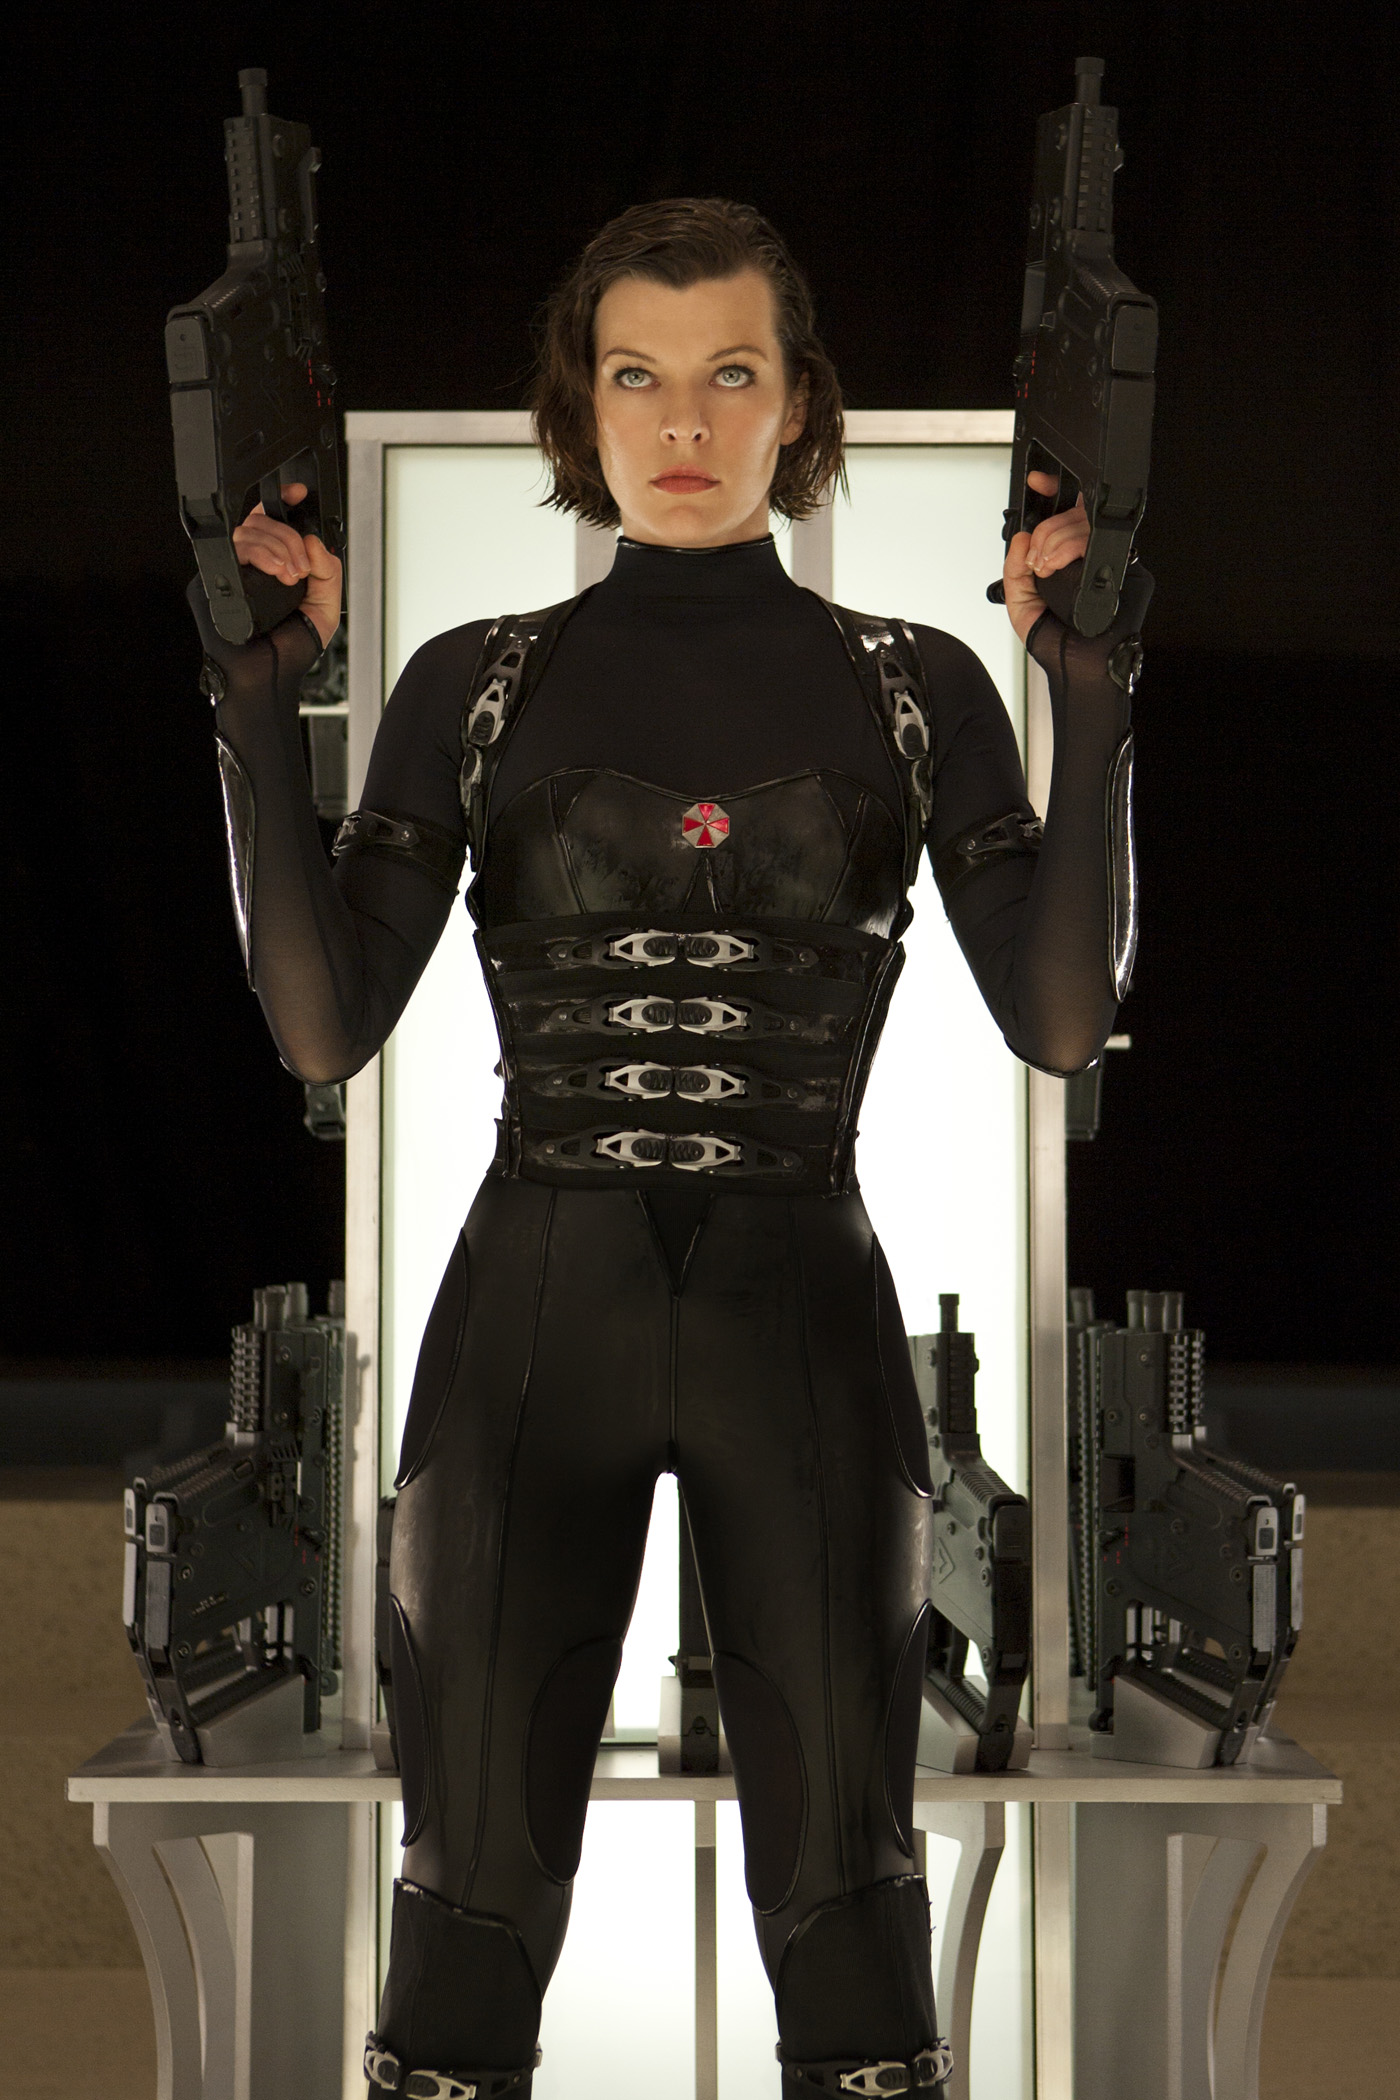 Evil retribution movie Resident